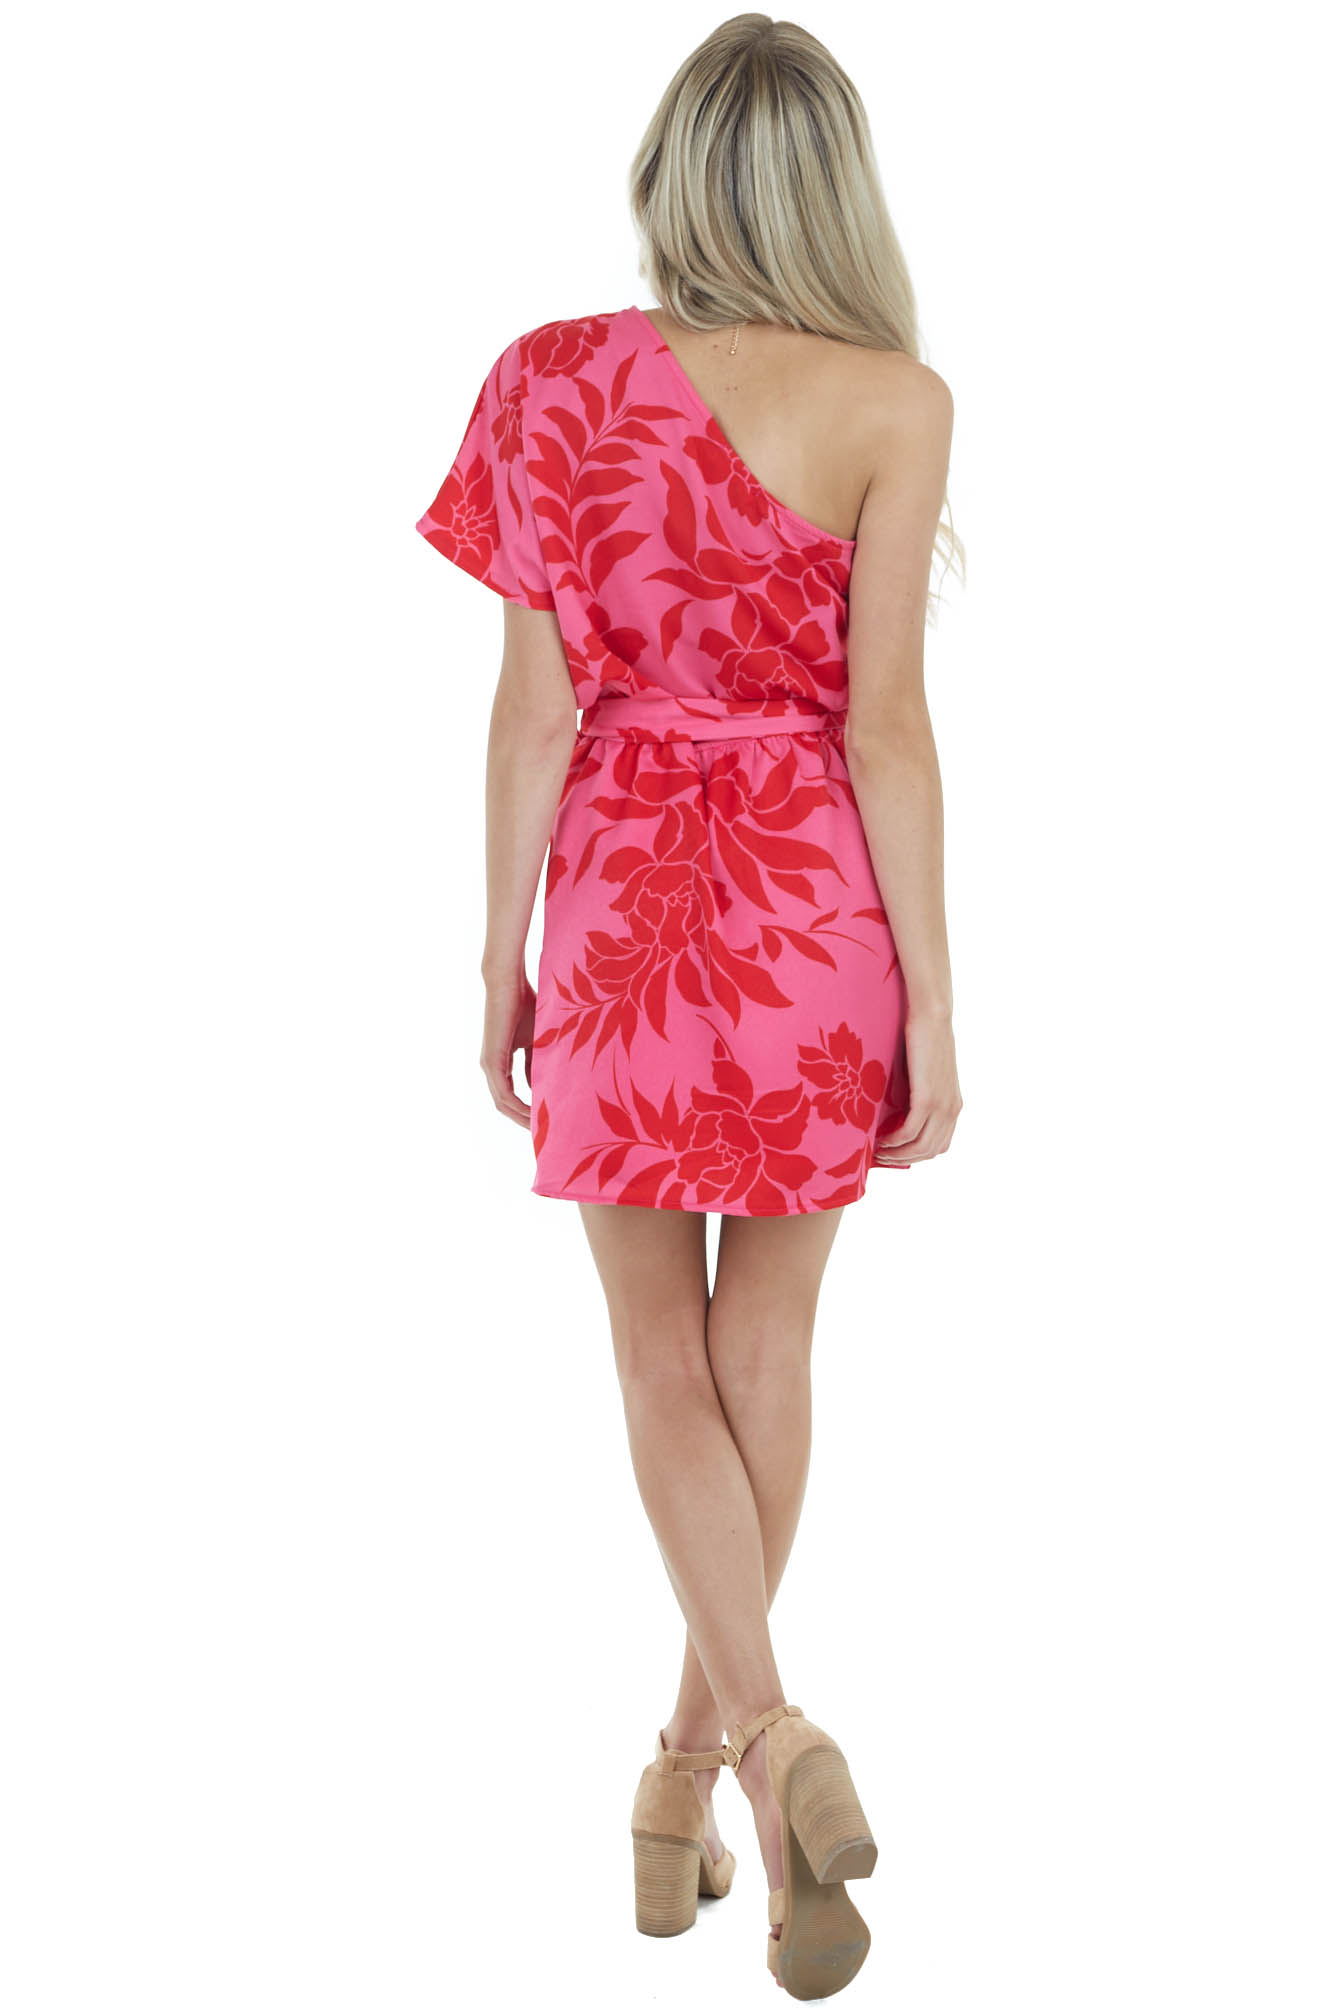 Fuchsia Floral Print One Shoulder Mini Dress with Tie Detail